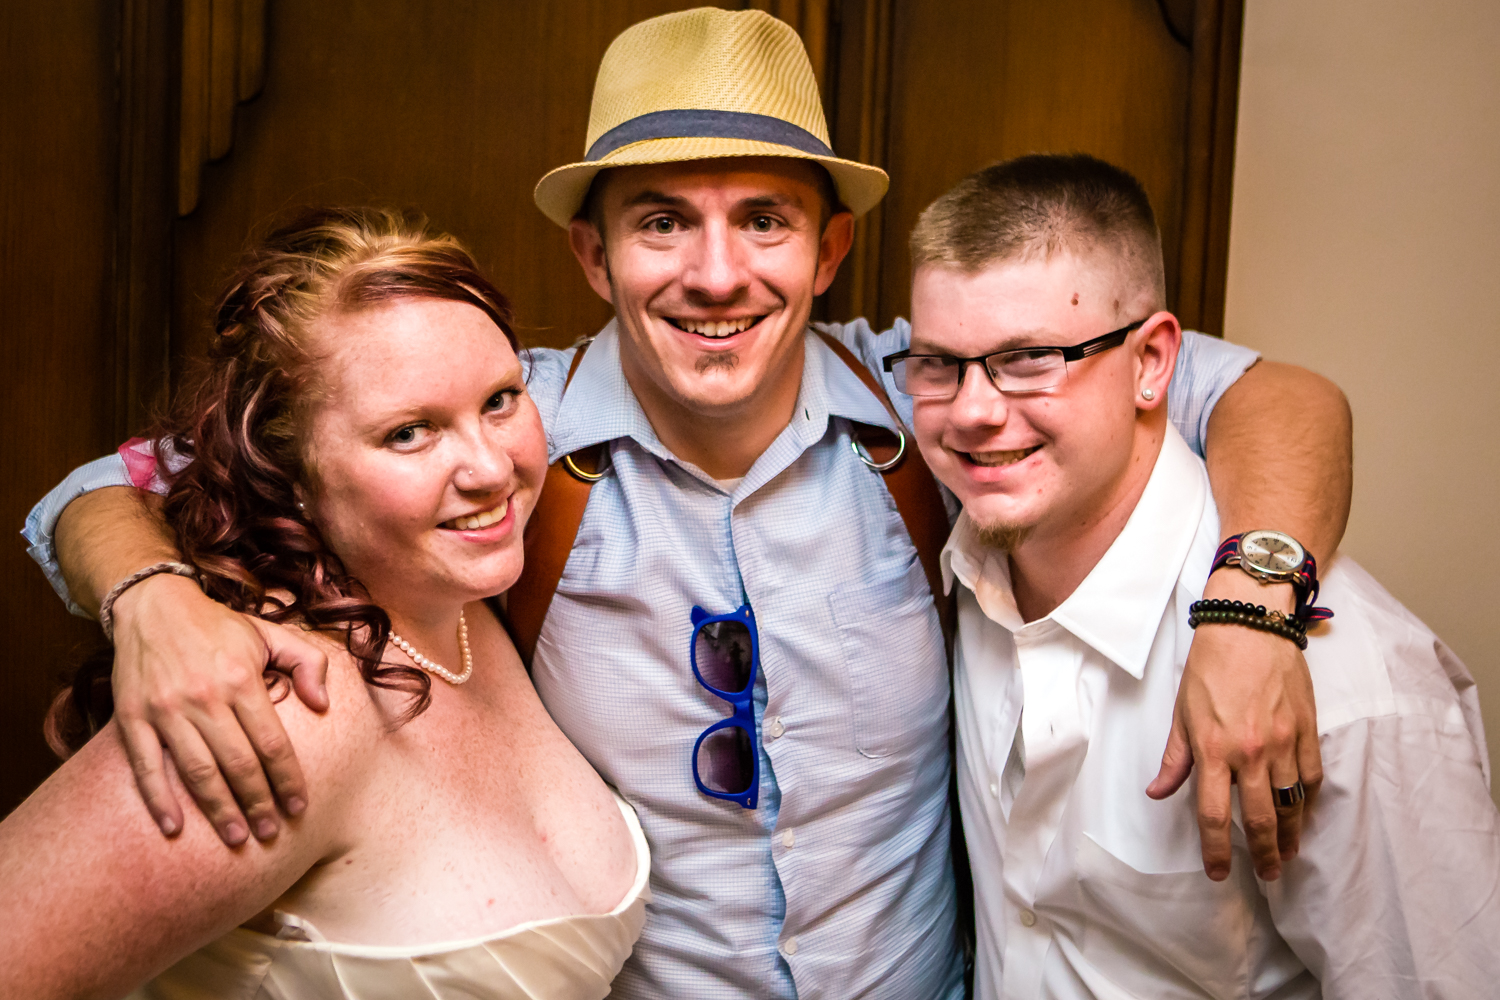 Bride and groom with their photographer.Photographed by JMGant Photography.